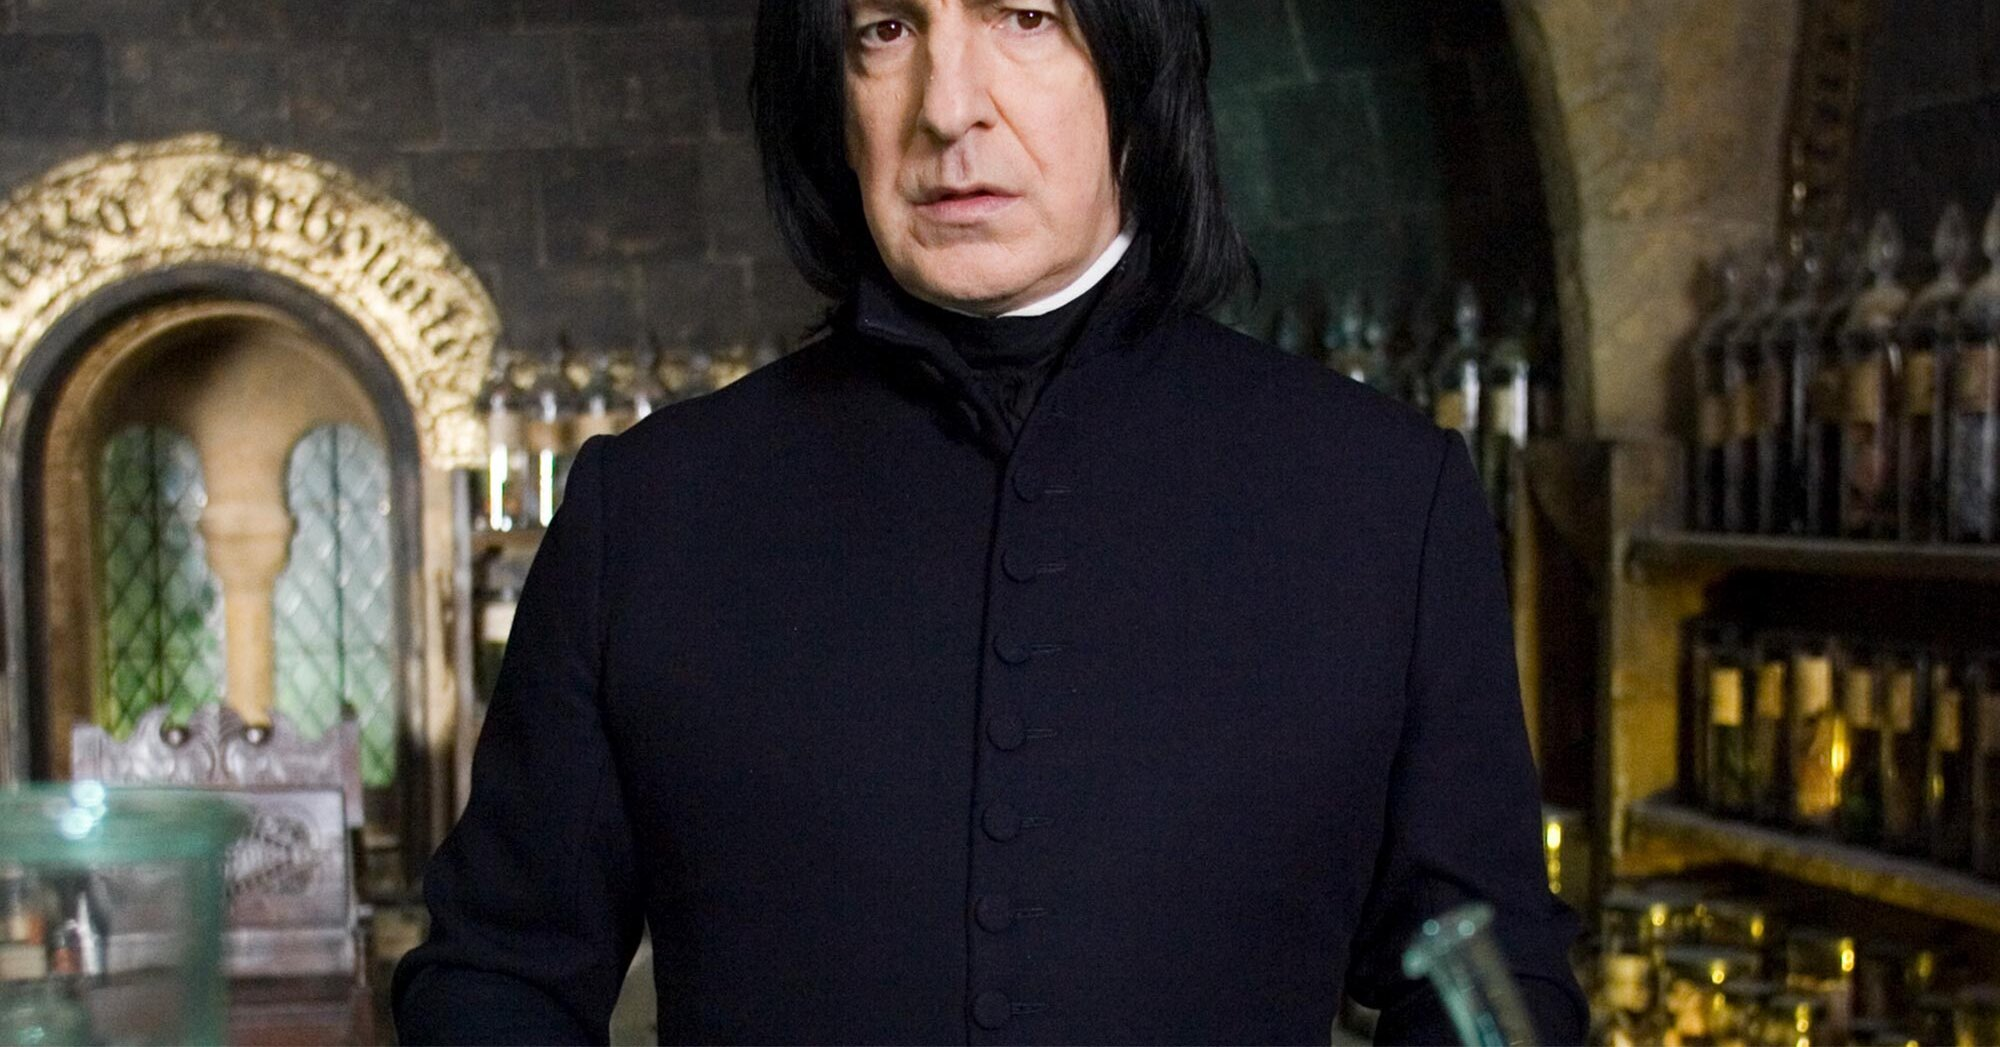 J.K. Rowling posts a tribute to Alan Rickman that will bring tears to your eyes